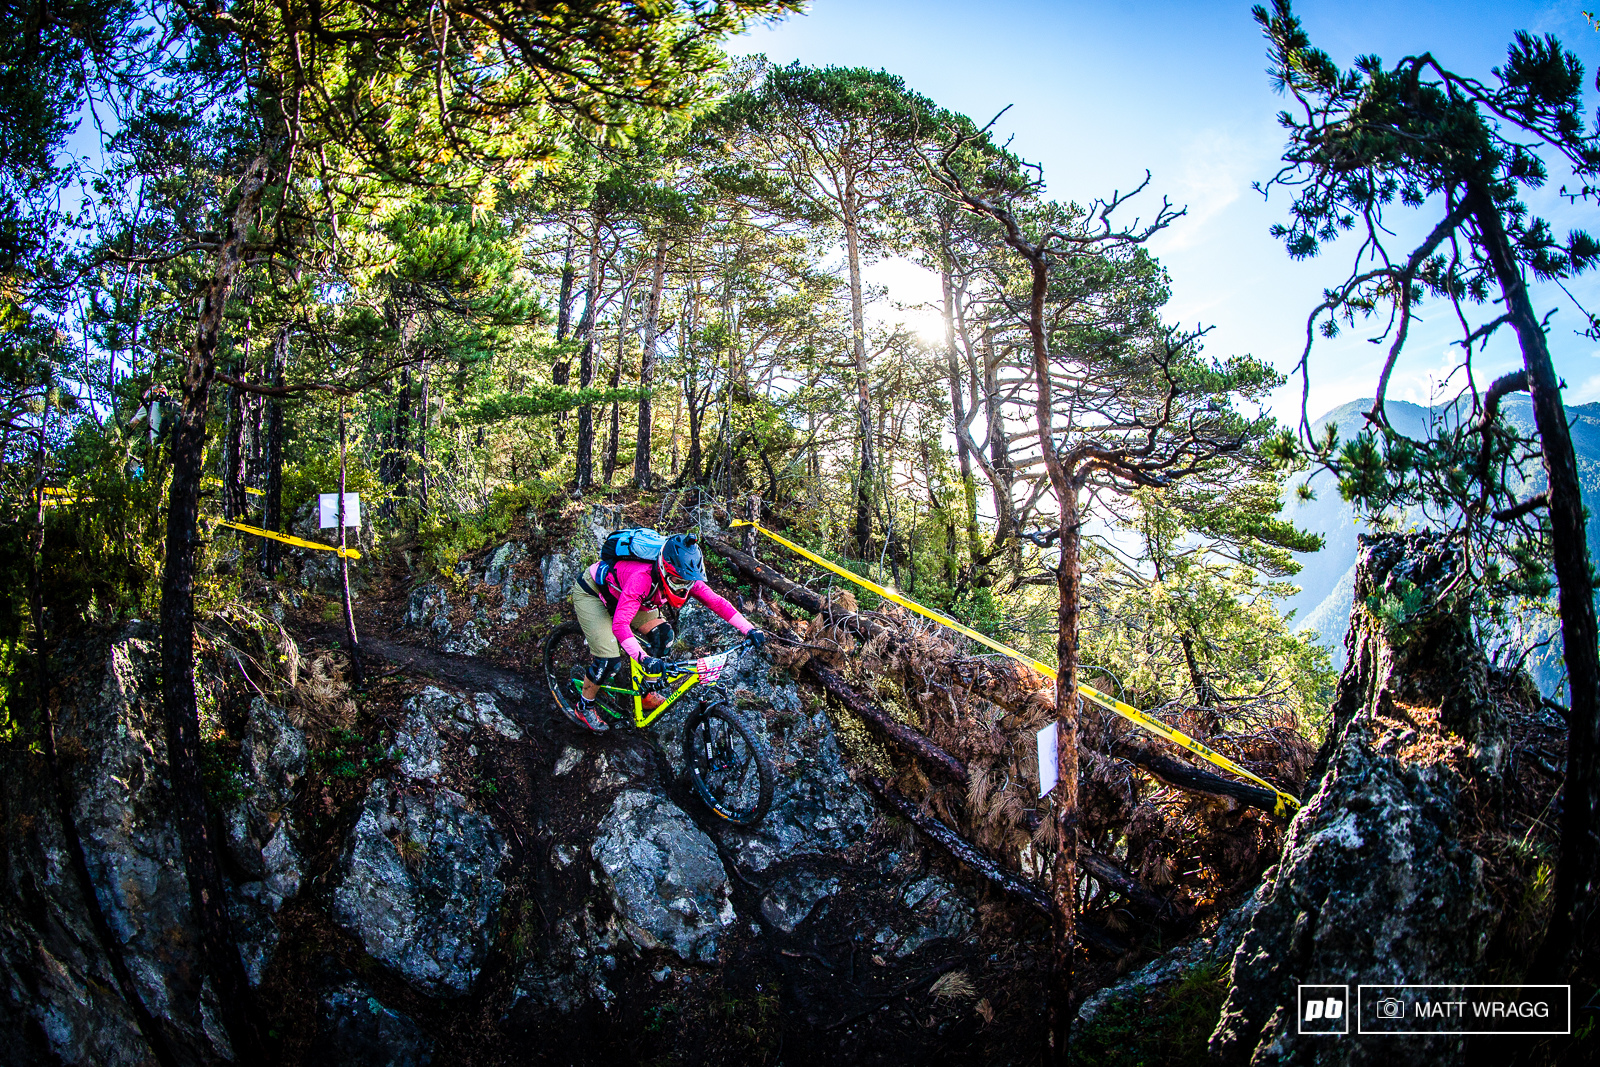 Nathalie Schneitter is back racing EWS this weekend. The Swiss XC pro has racked up some impressive results at the EWS in the past and there s no doubt she s going to have the legs for a long race like this.